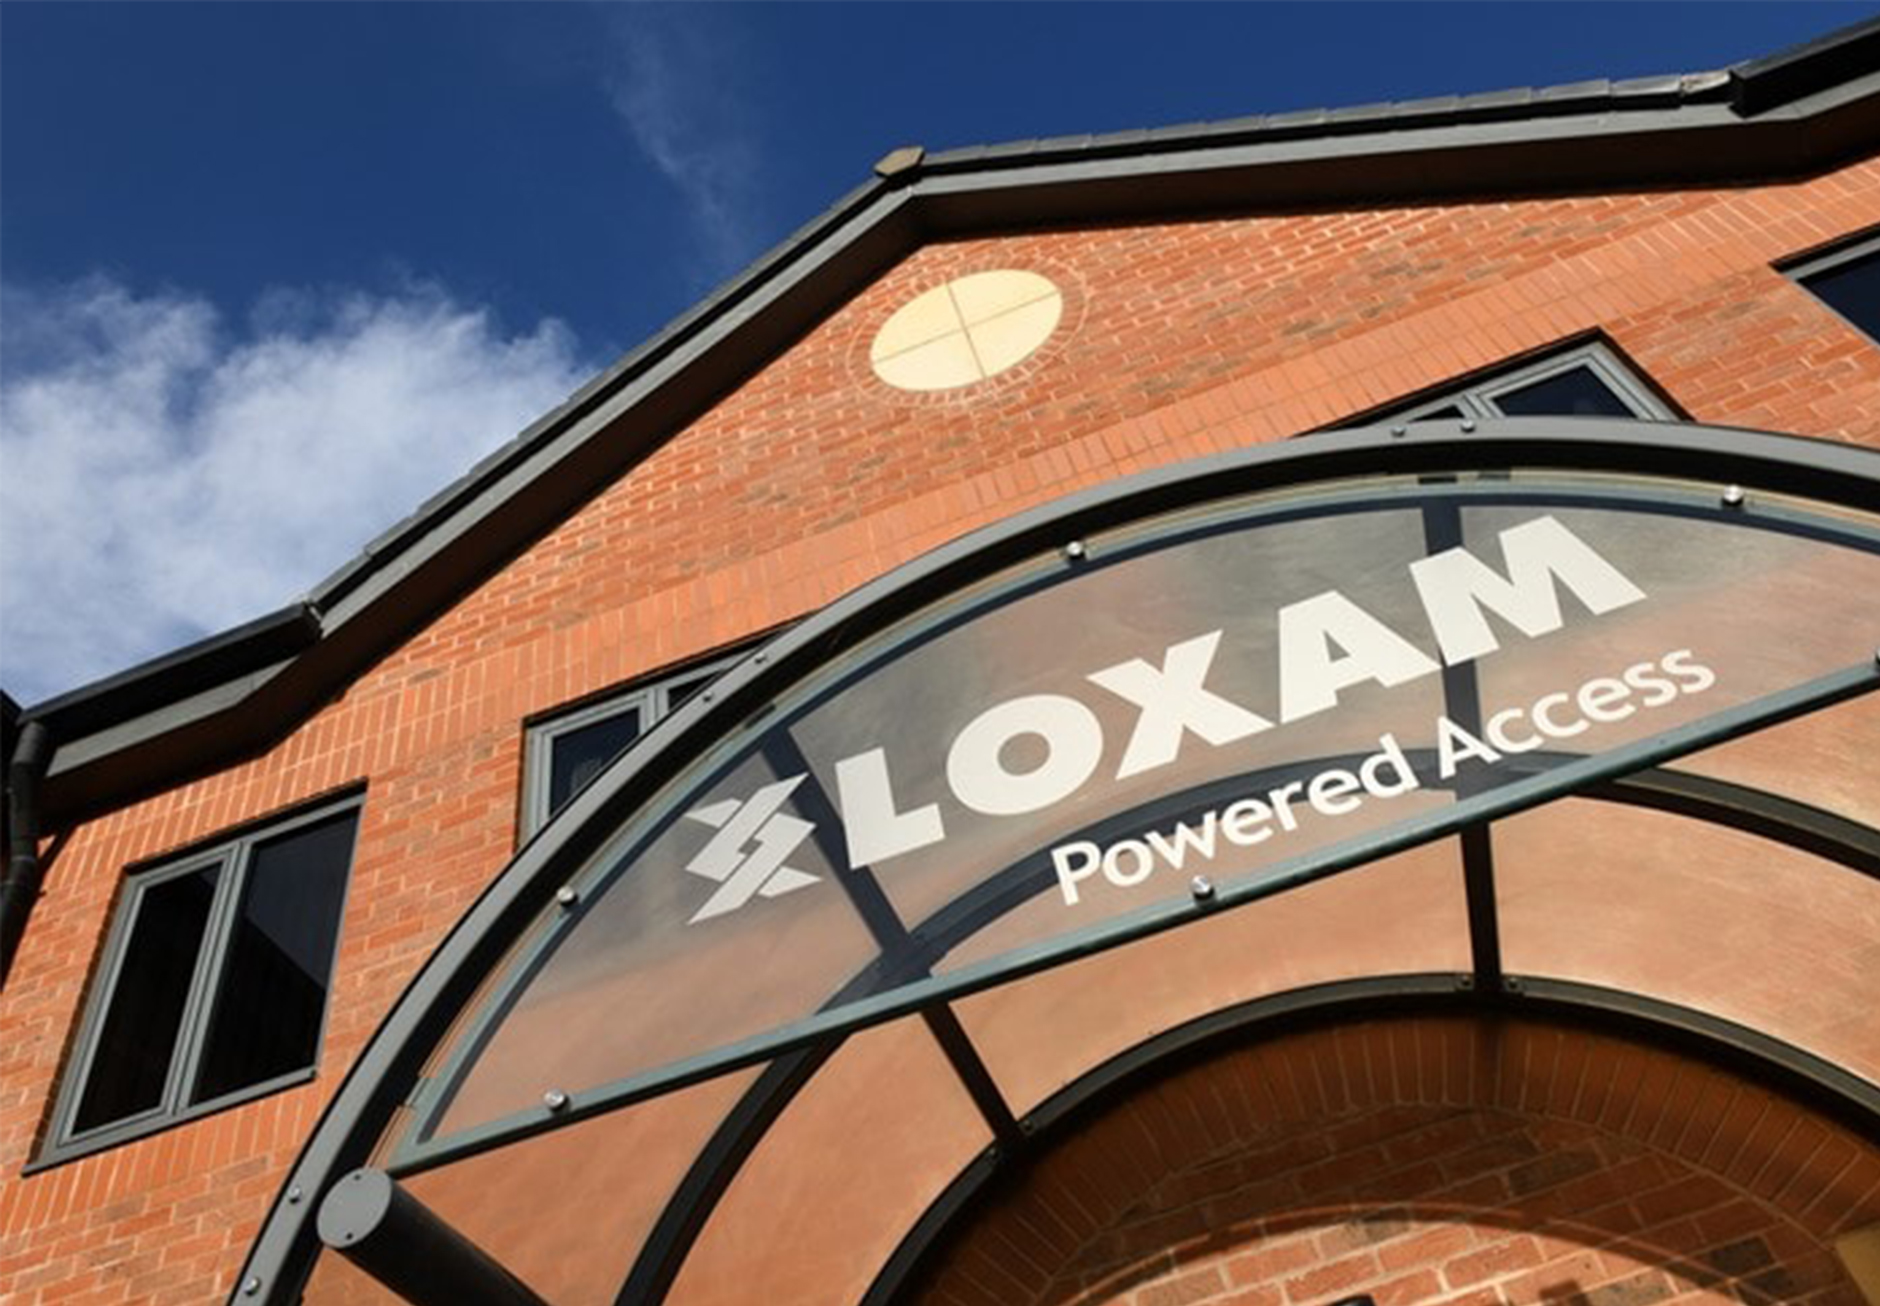 Rapid Access is a subsidiary of Loxam Group